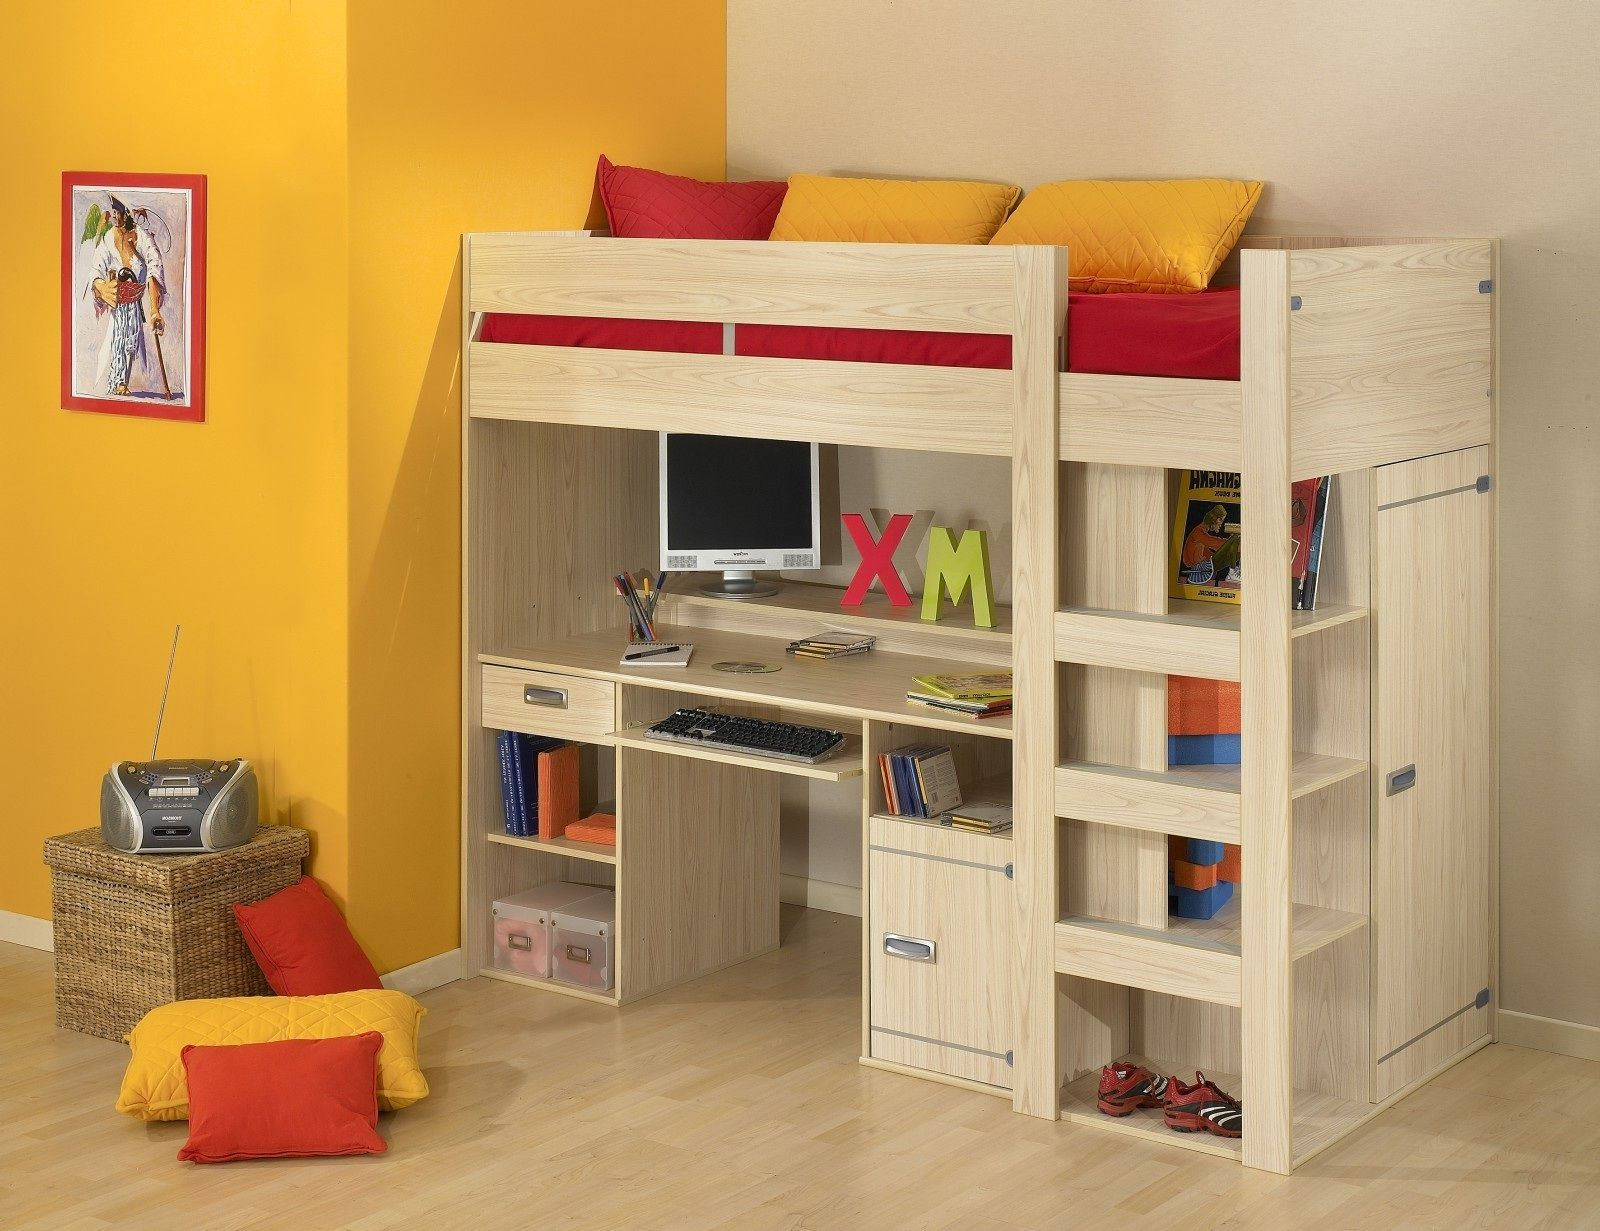 Permalink to 39 nice photos of Bunk Bed With Table Underneath